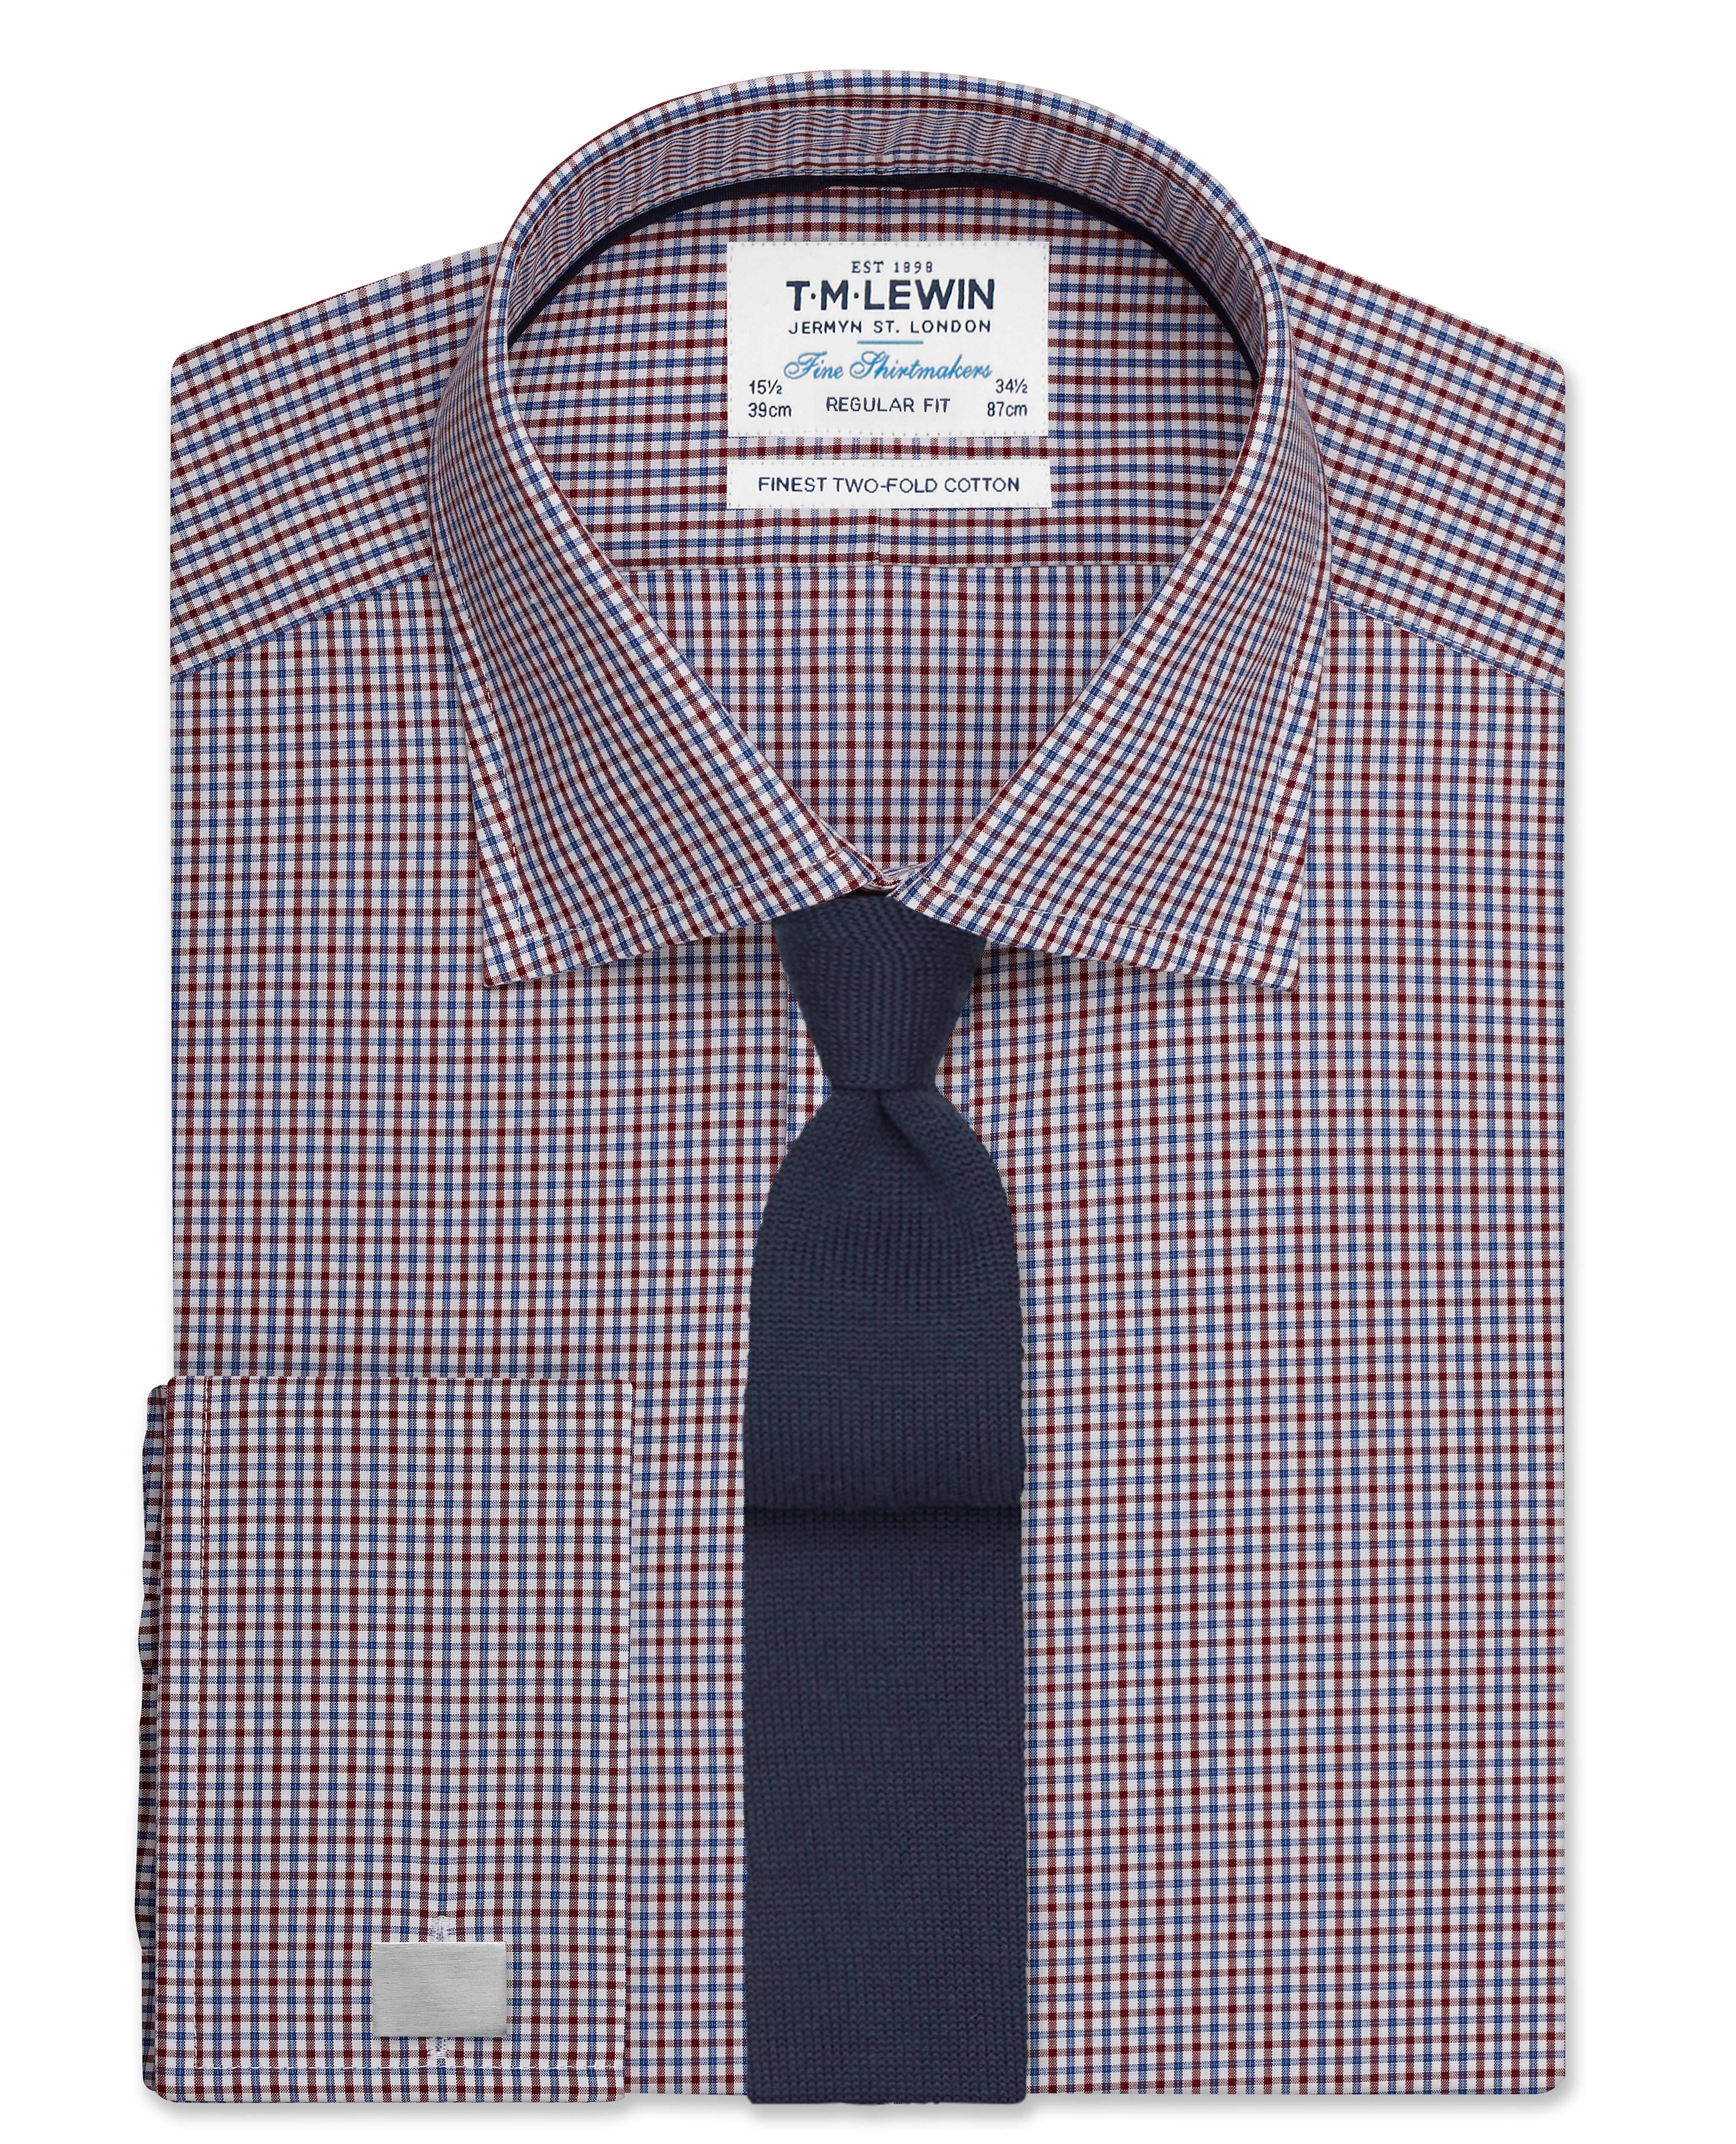 Regular Fit shirts regular fit burgundy and navy micro check shirt - double cuff GLSALNR